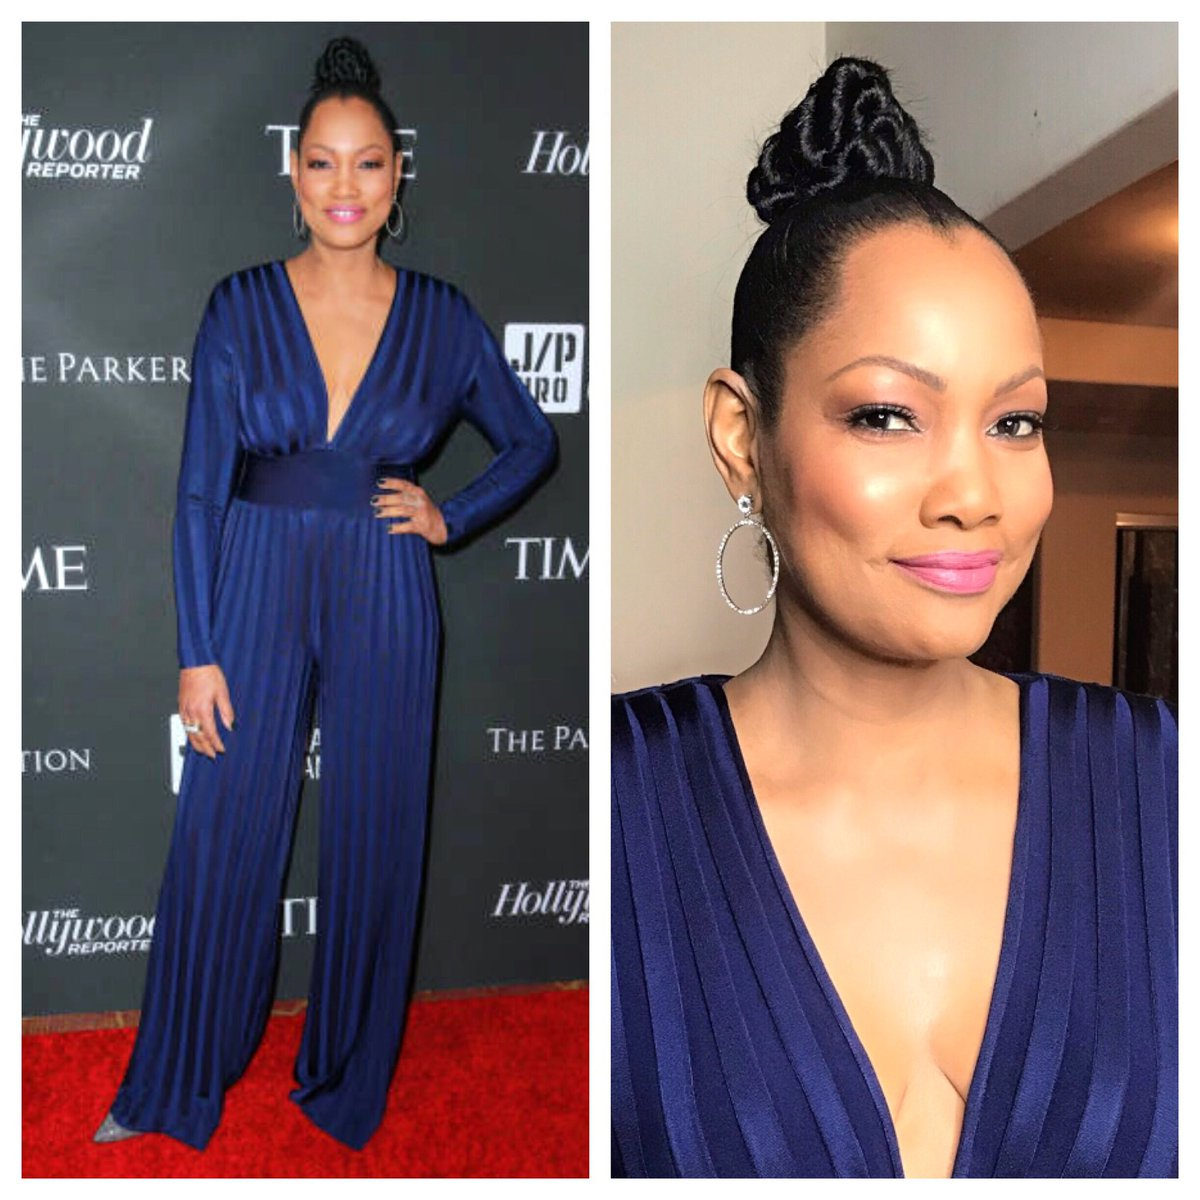 #AboutLastNight Sean Penn event for #Haiti @jphro thx glam @kymmyizabeauty @KeevaHair #topknot